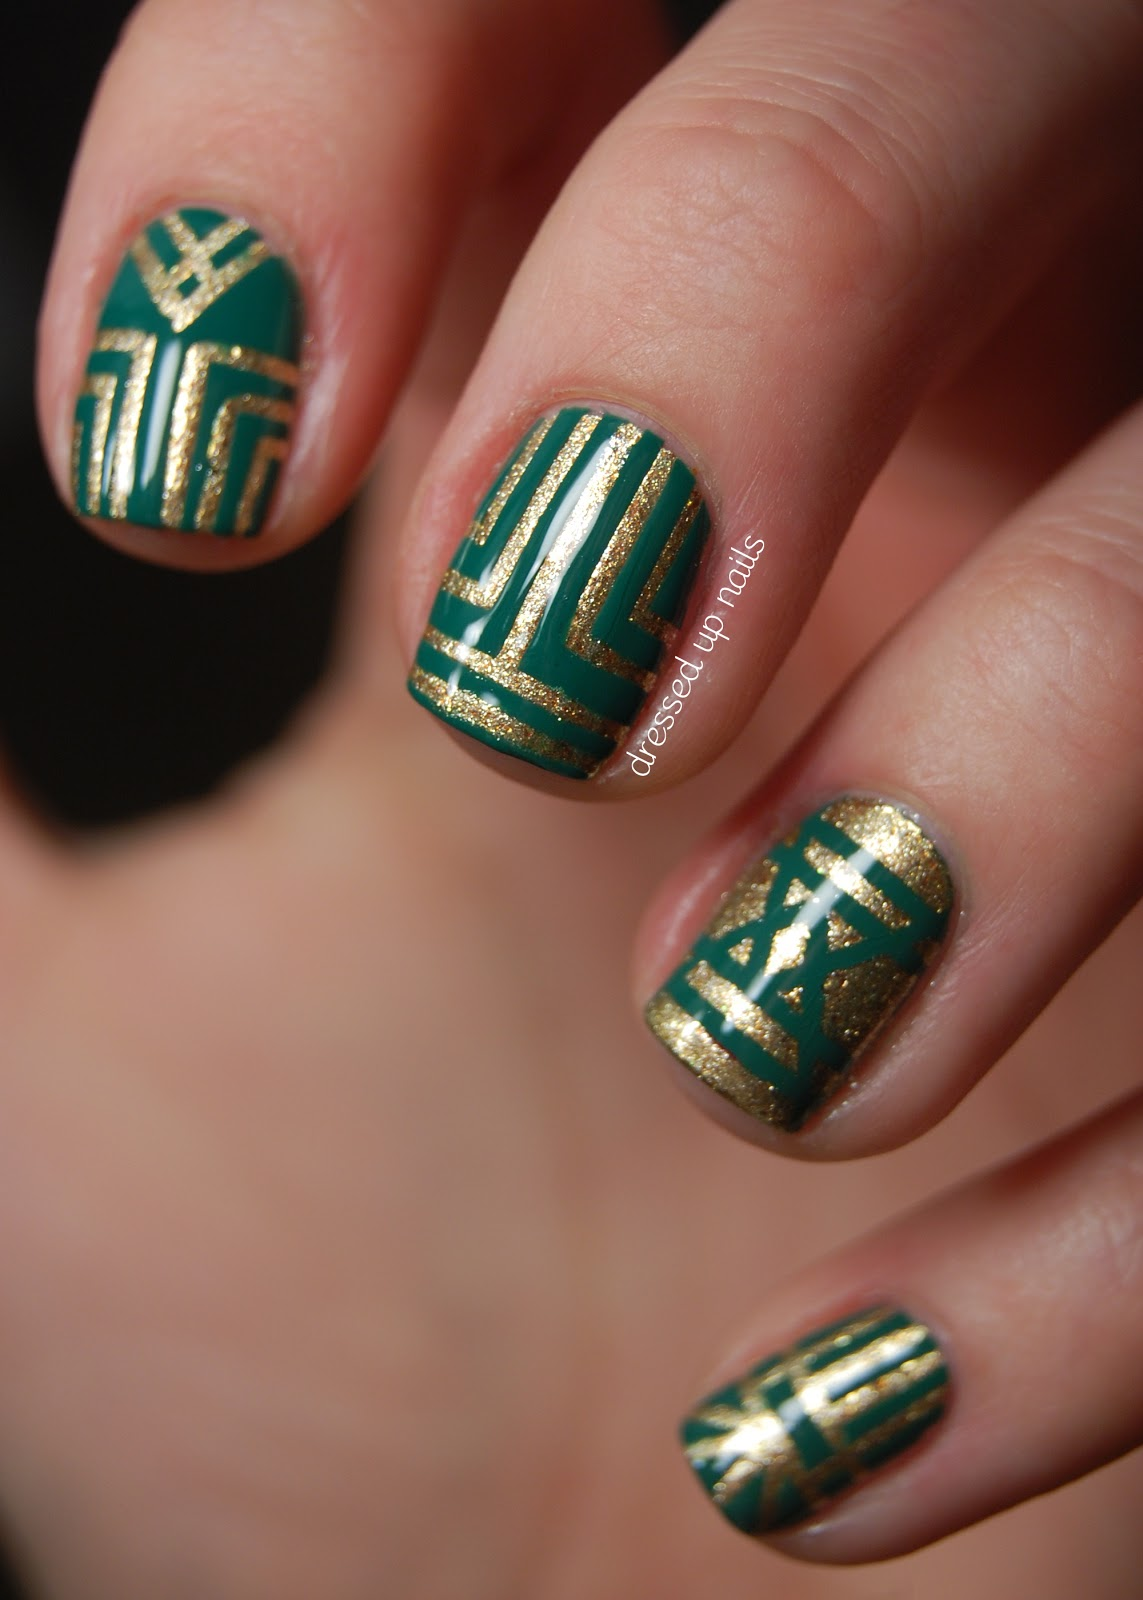 Nail Polish Designs With Tape | Nail Designs, Hair Styles, Tattoos and ...